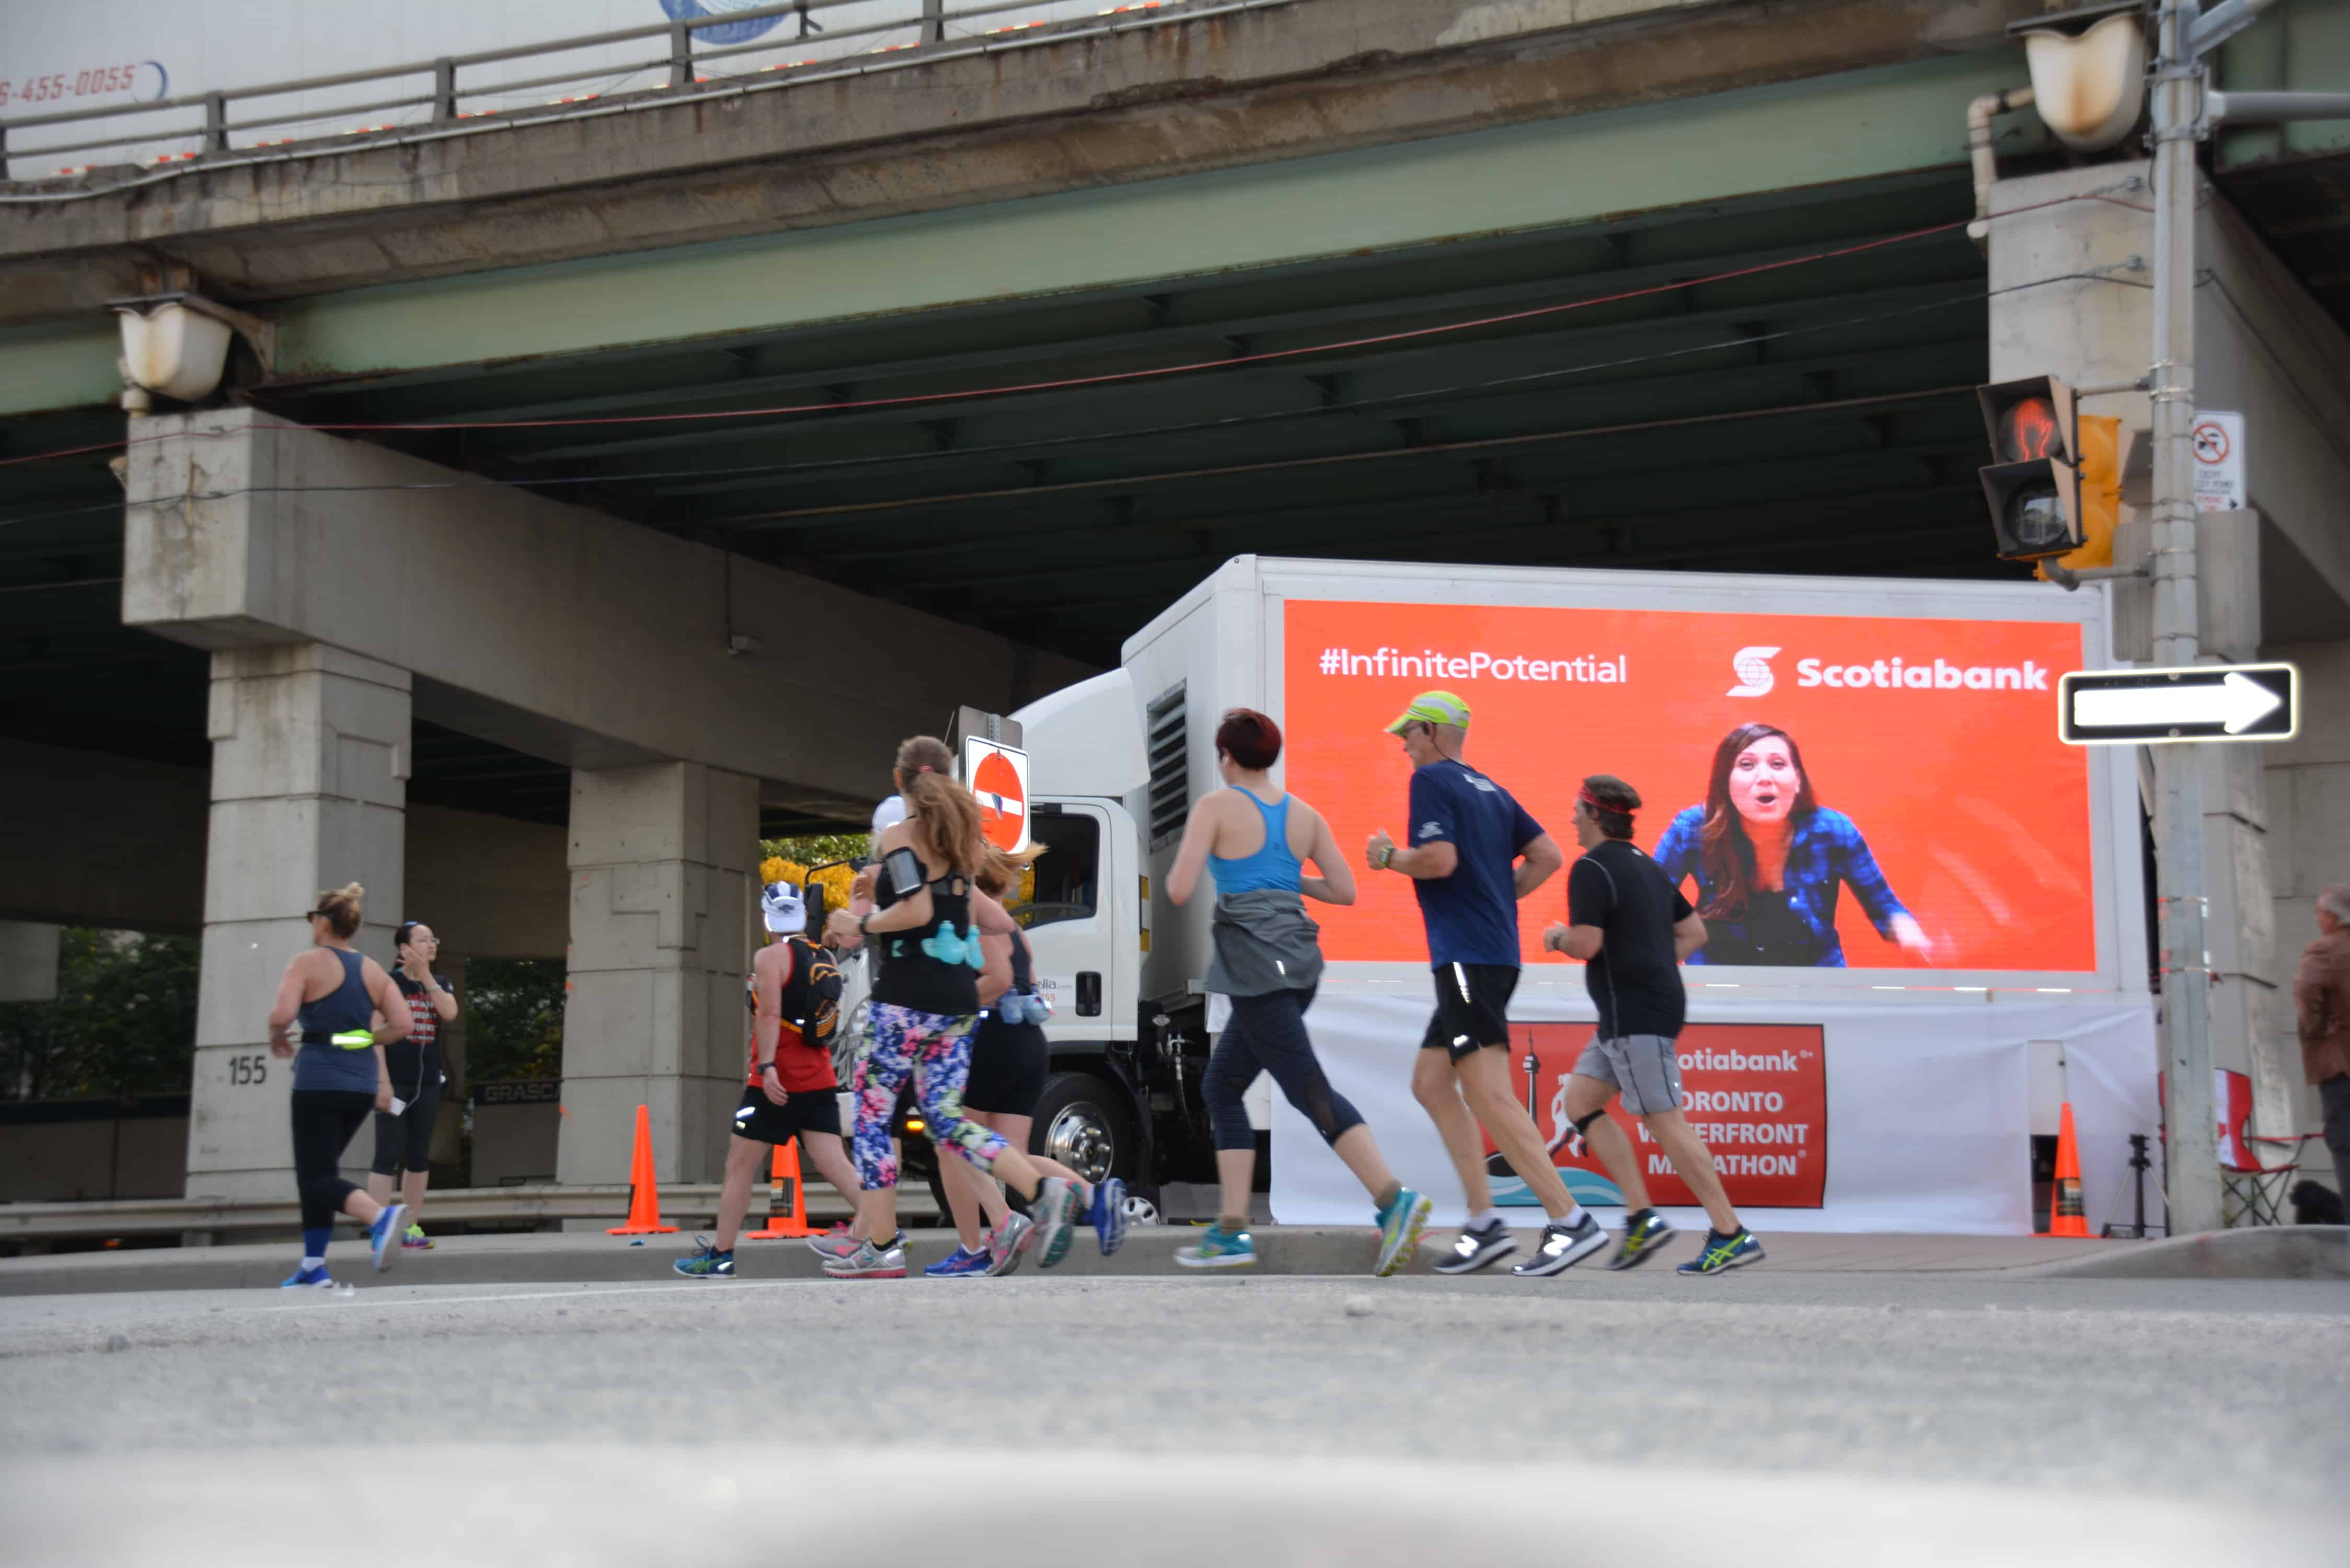 Mobile billboard trucks for event and advertising